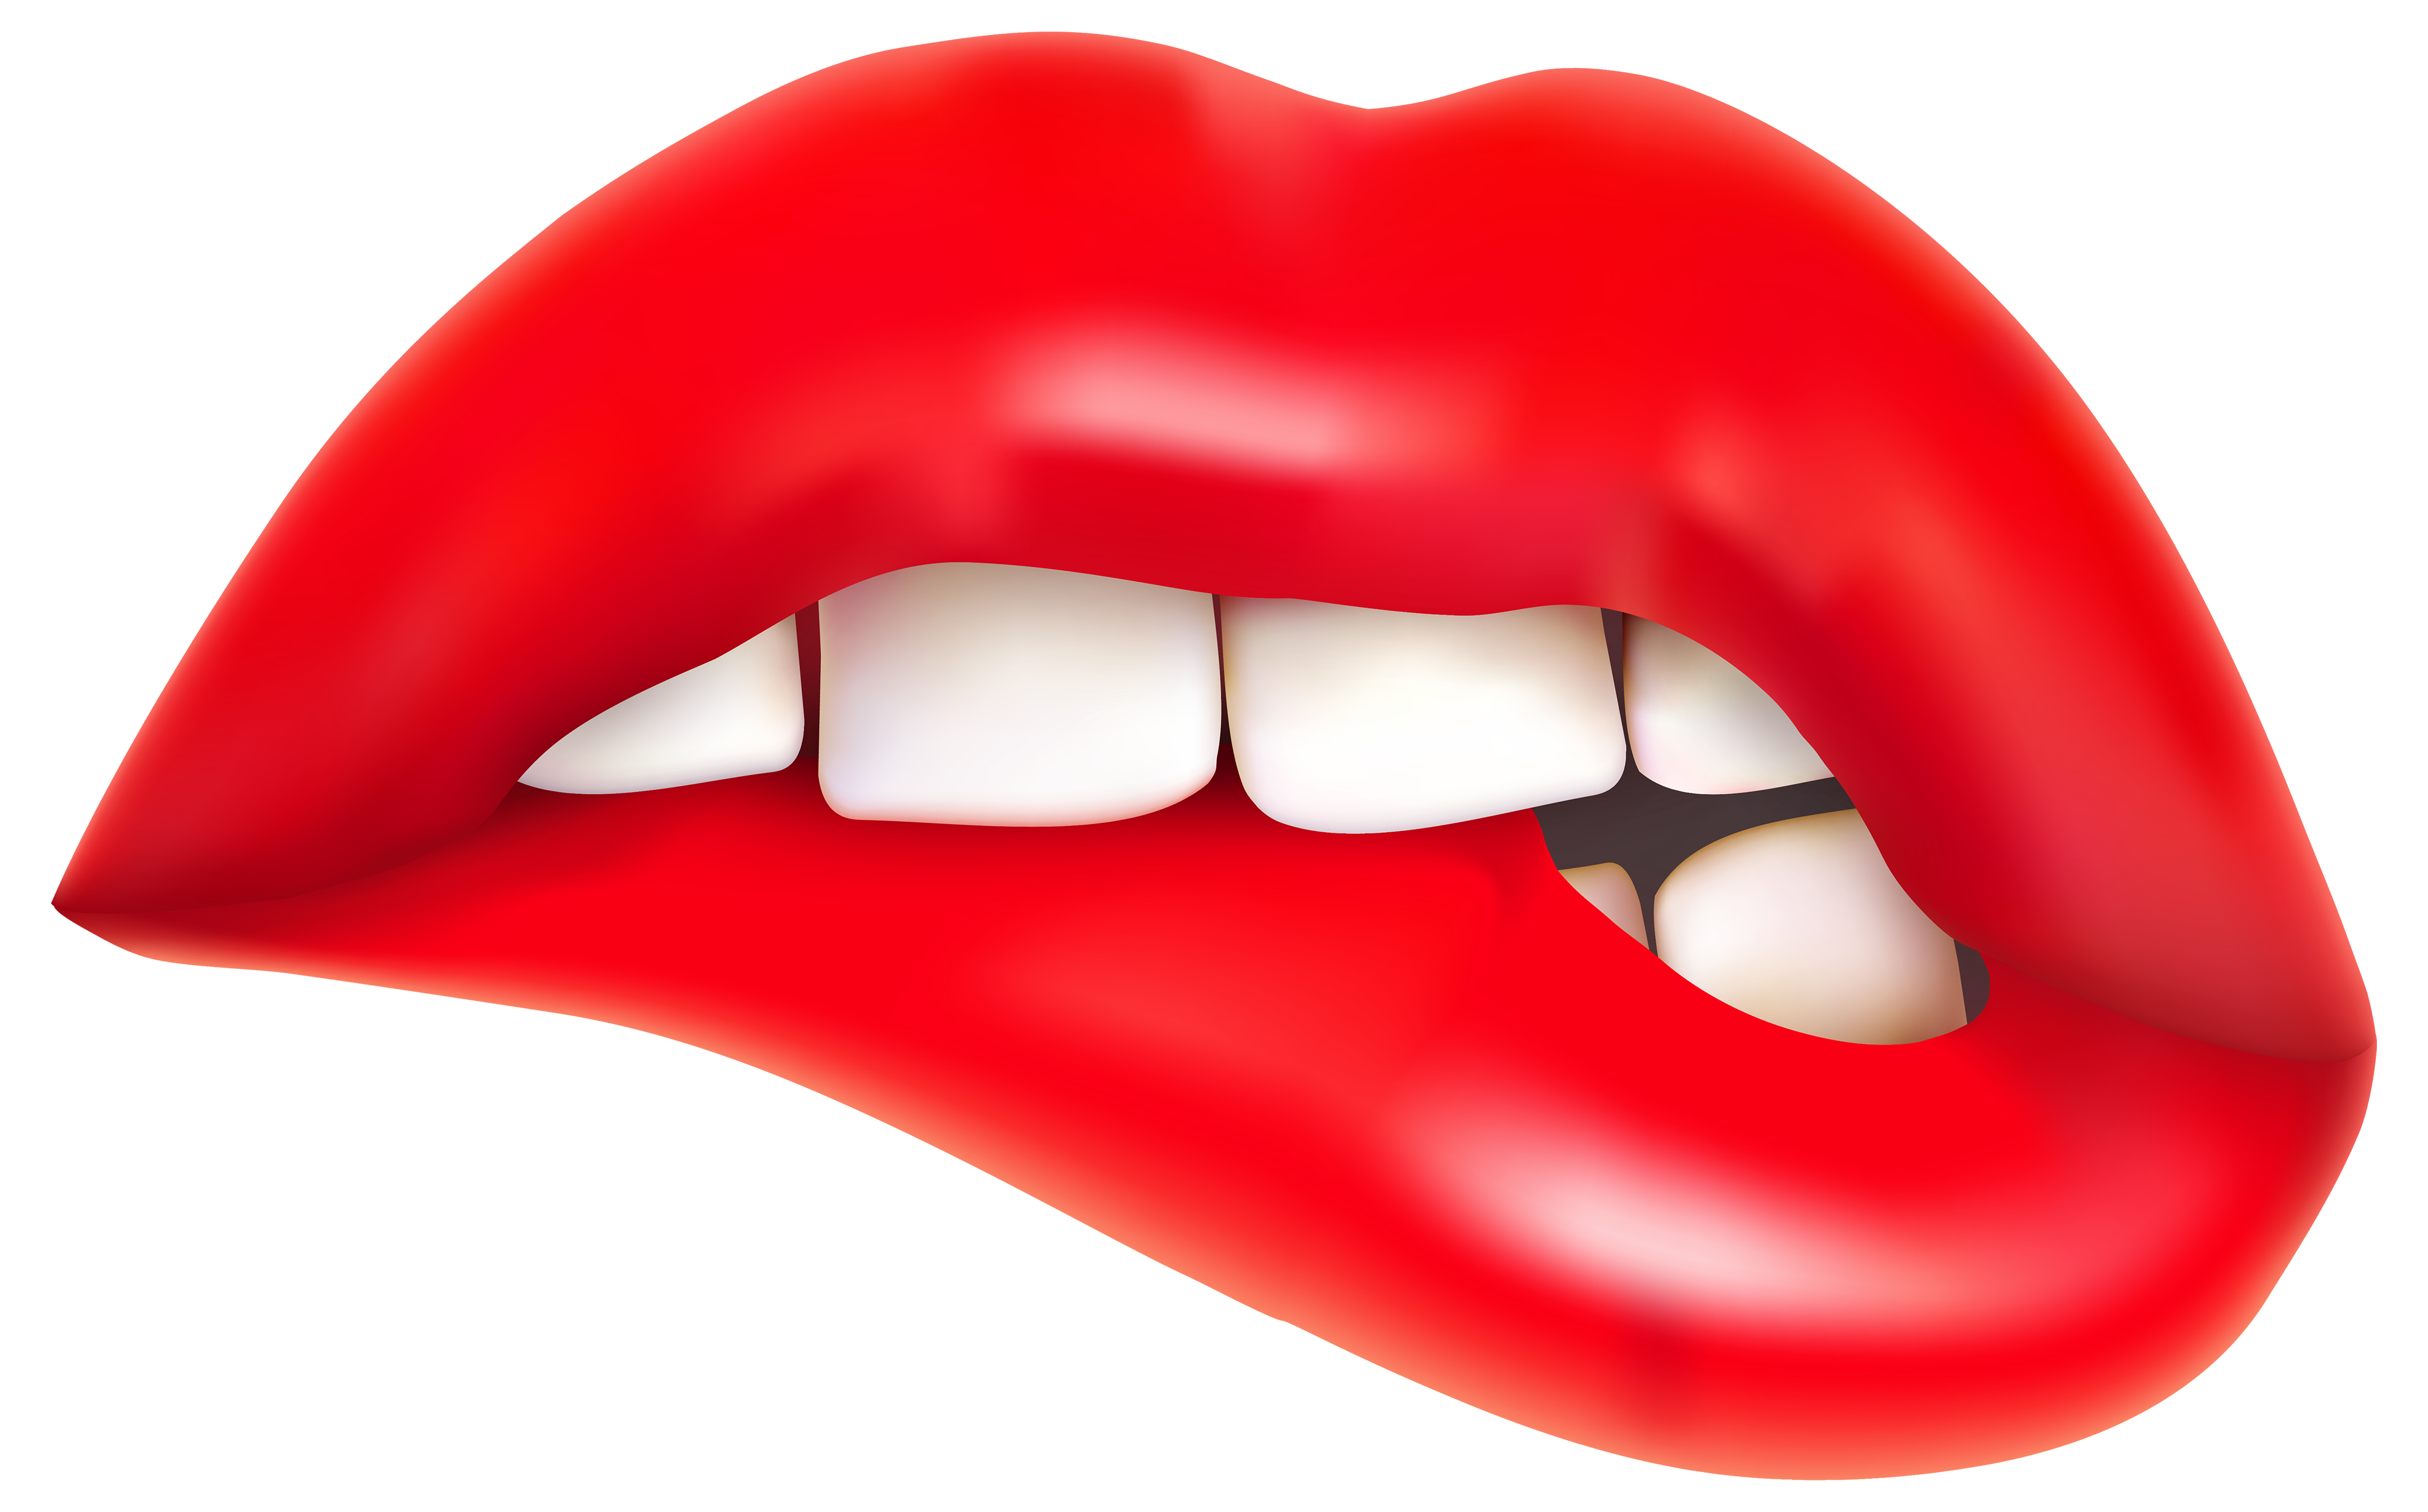 Lips Png Clipart The Best Png Clipart Clip Art Lip Outline Red Hearts Art